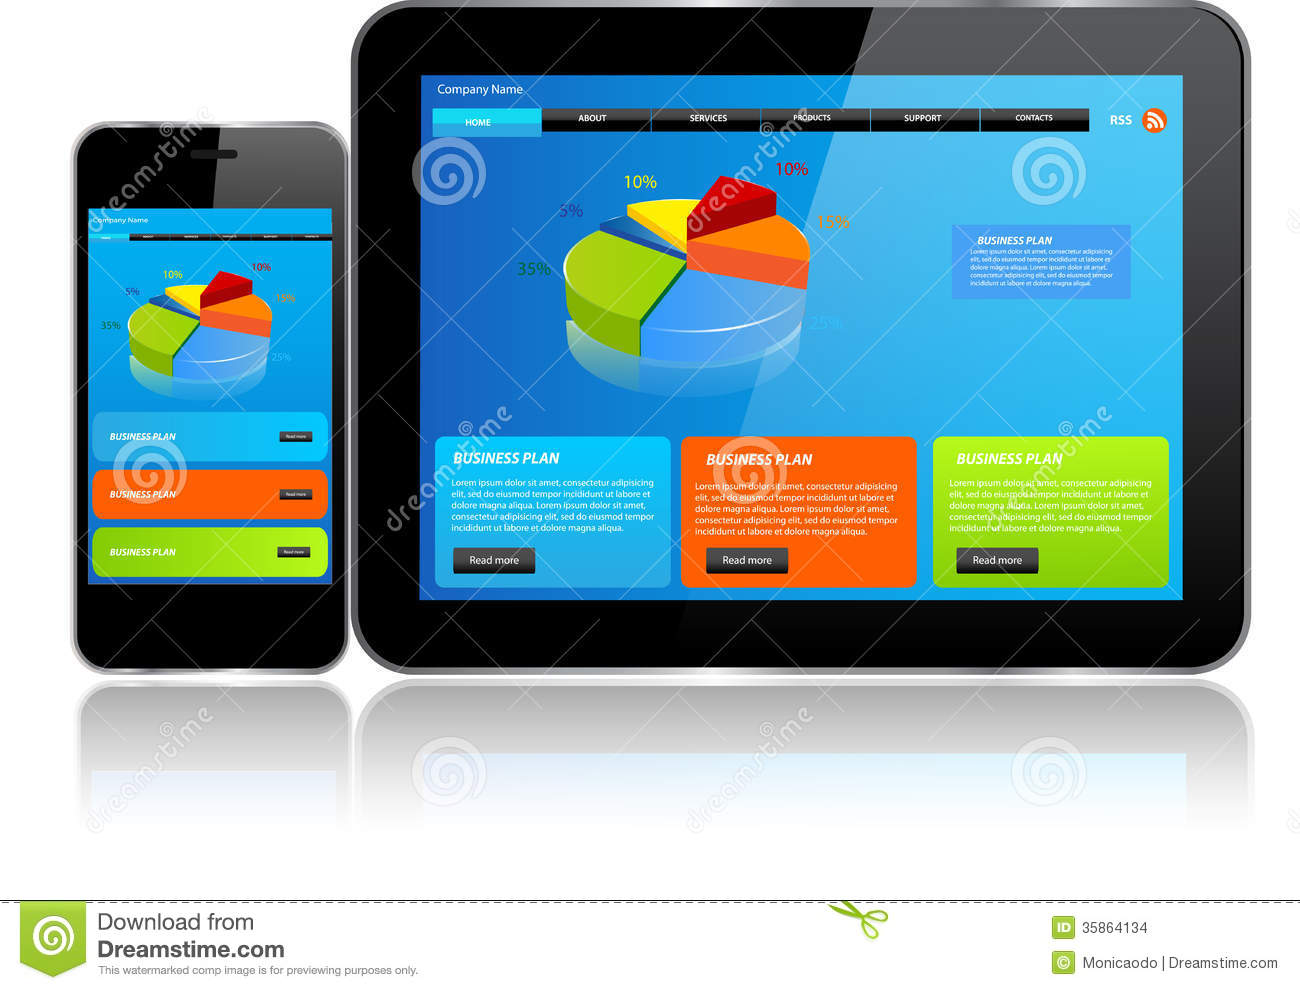 Tablet and Smartphone.Responsive website template on multiple devices.: www.dreamstime.com/stock-images-tablet-smartphone-responsive...